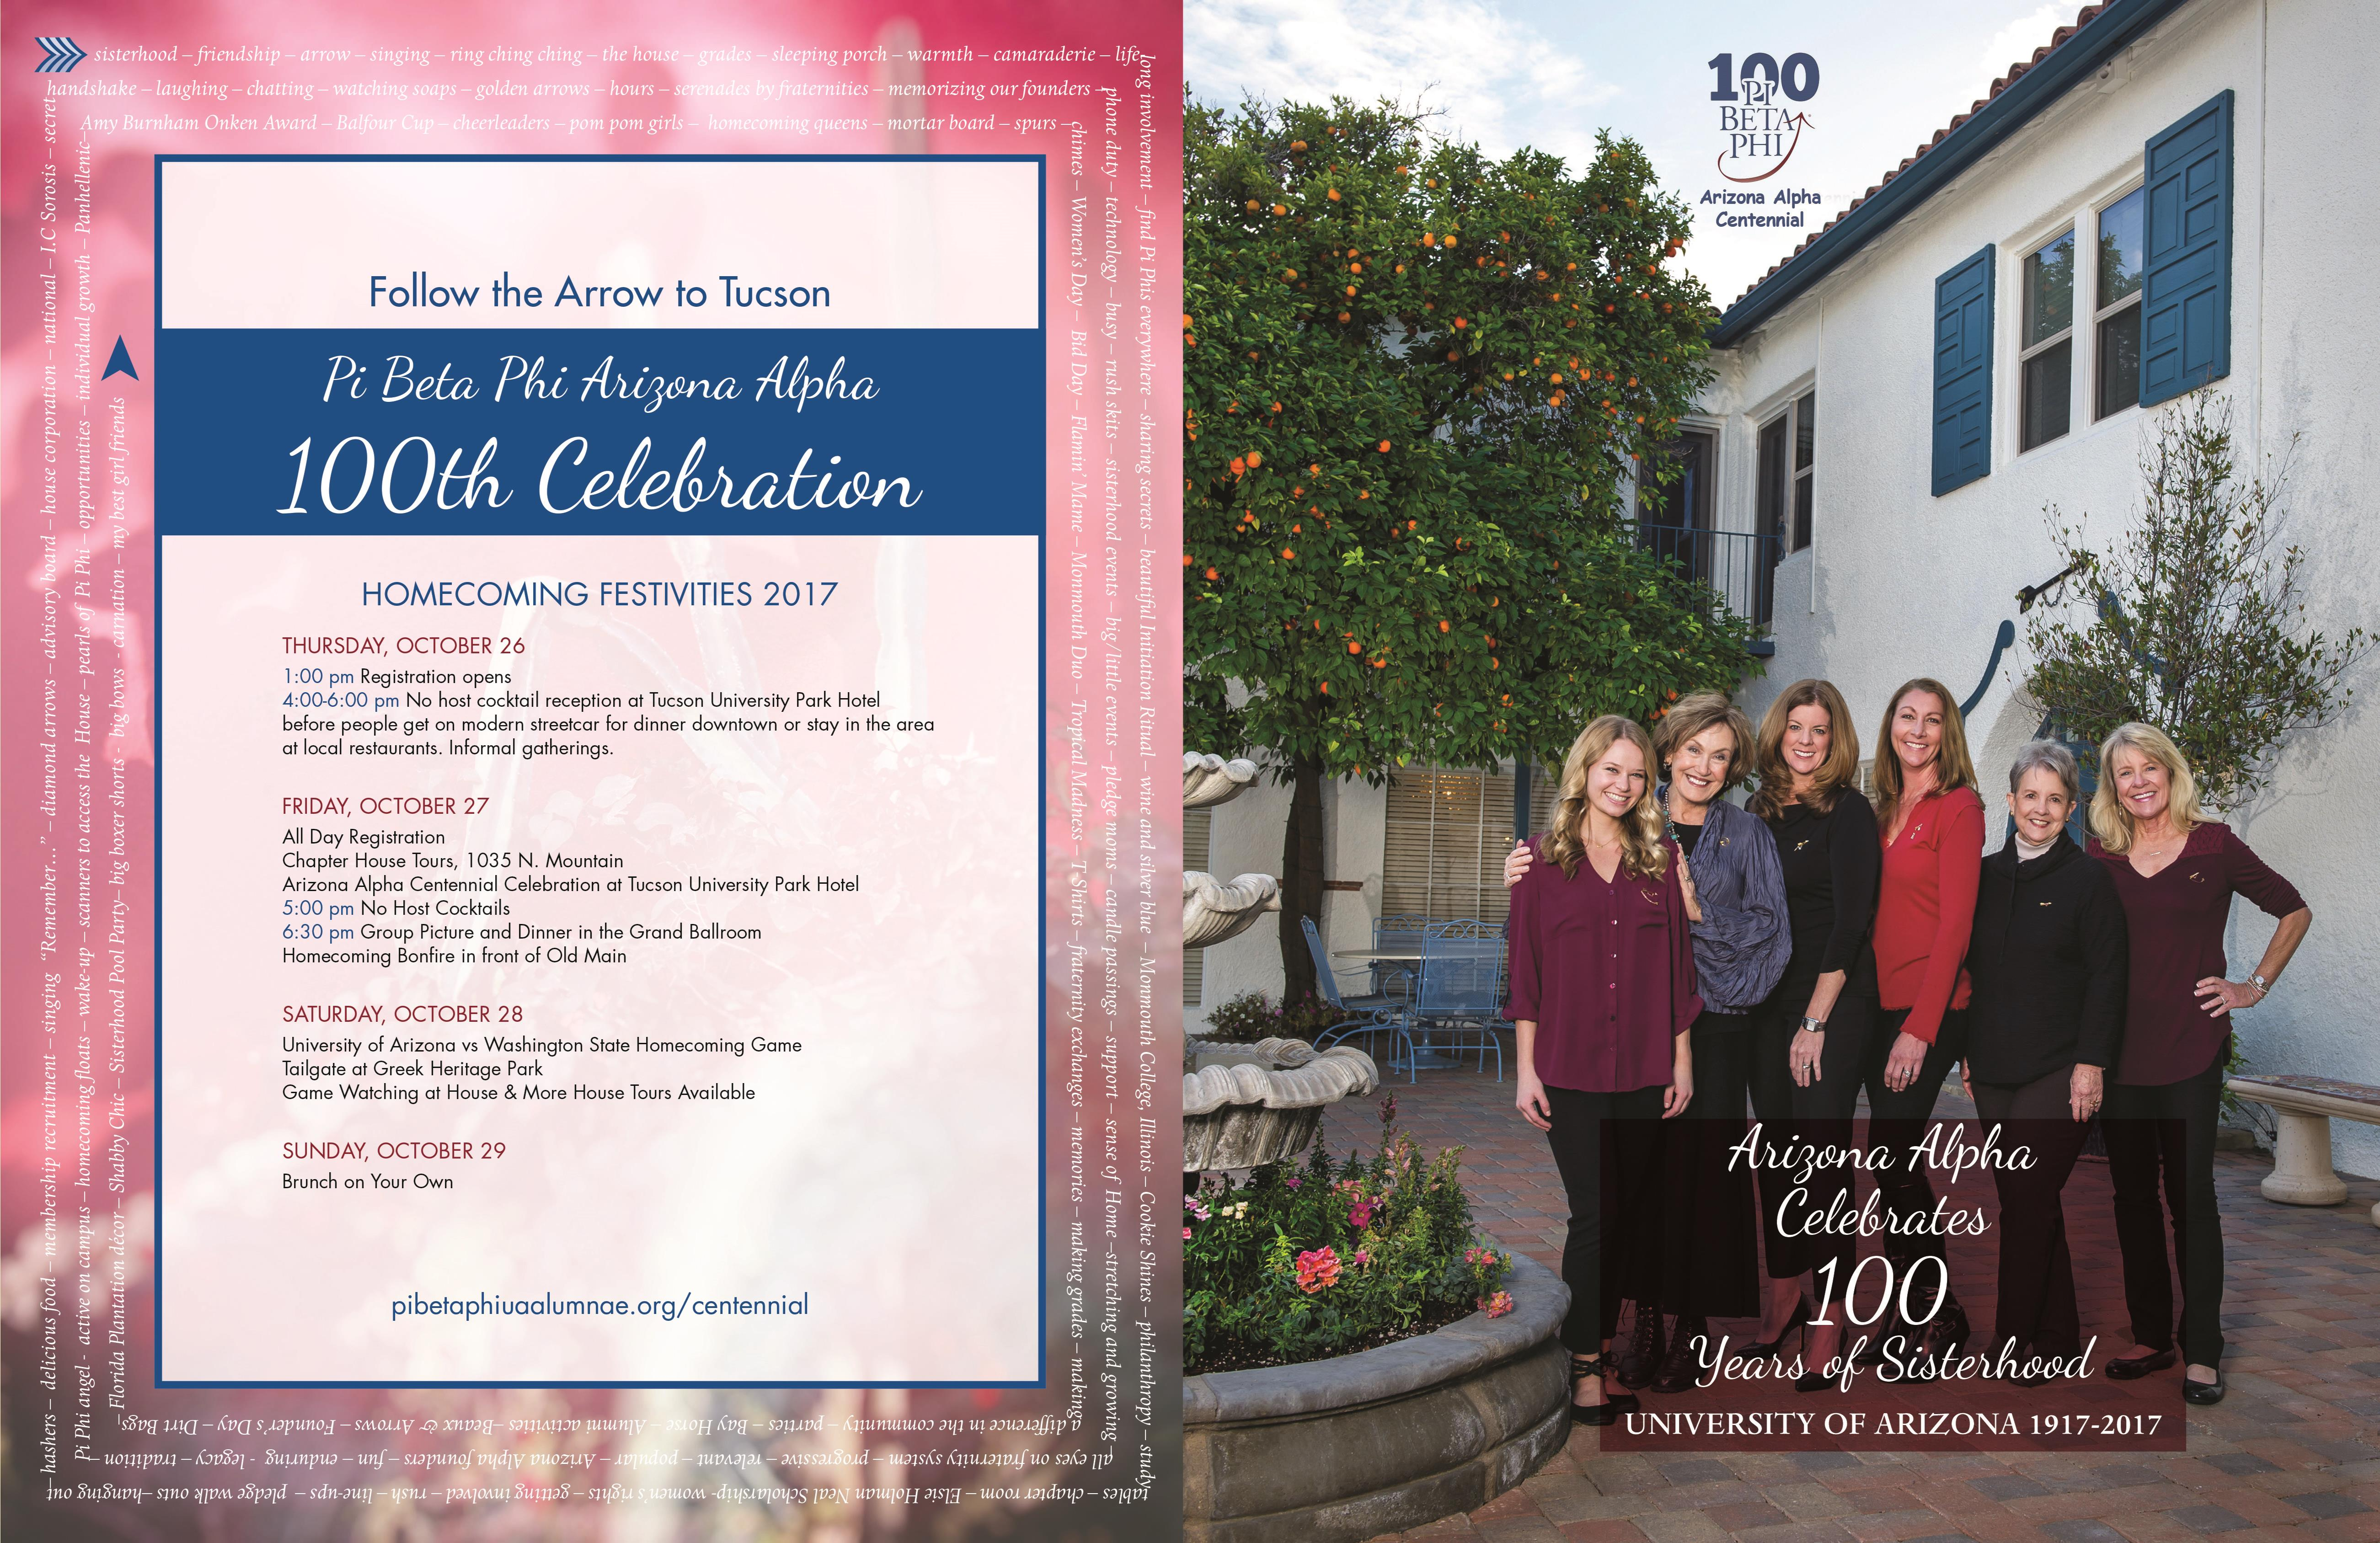 Pi Beta Phi: Arizona Alpha Celebrates 100 Years of Sisterhood cover image